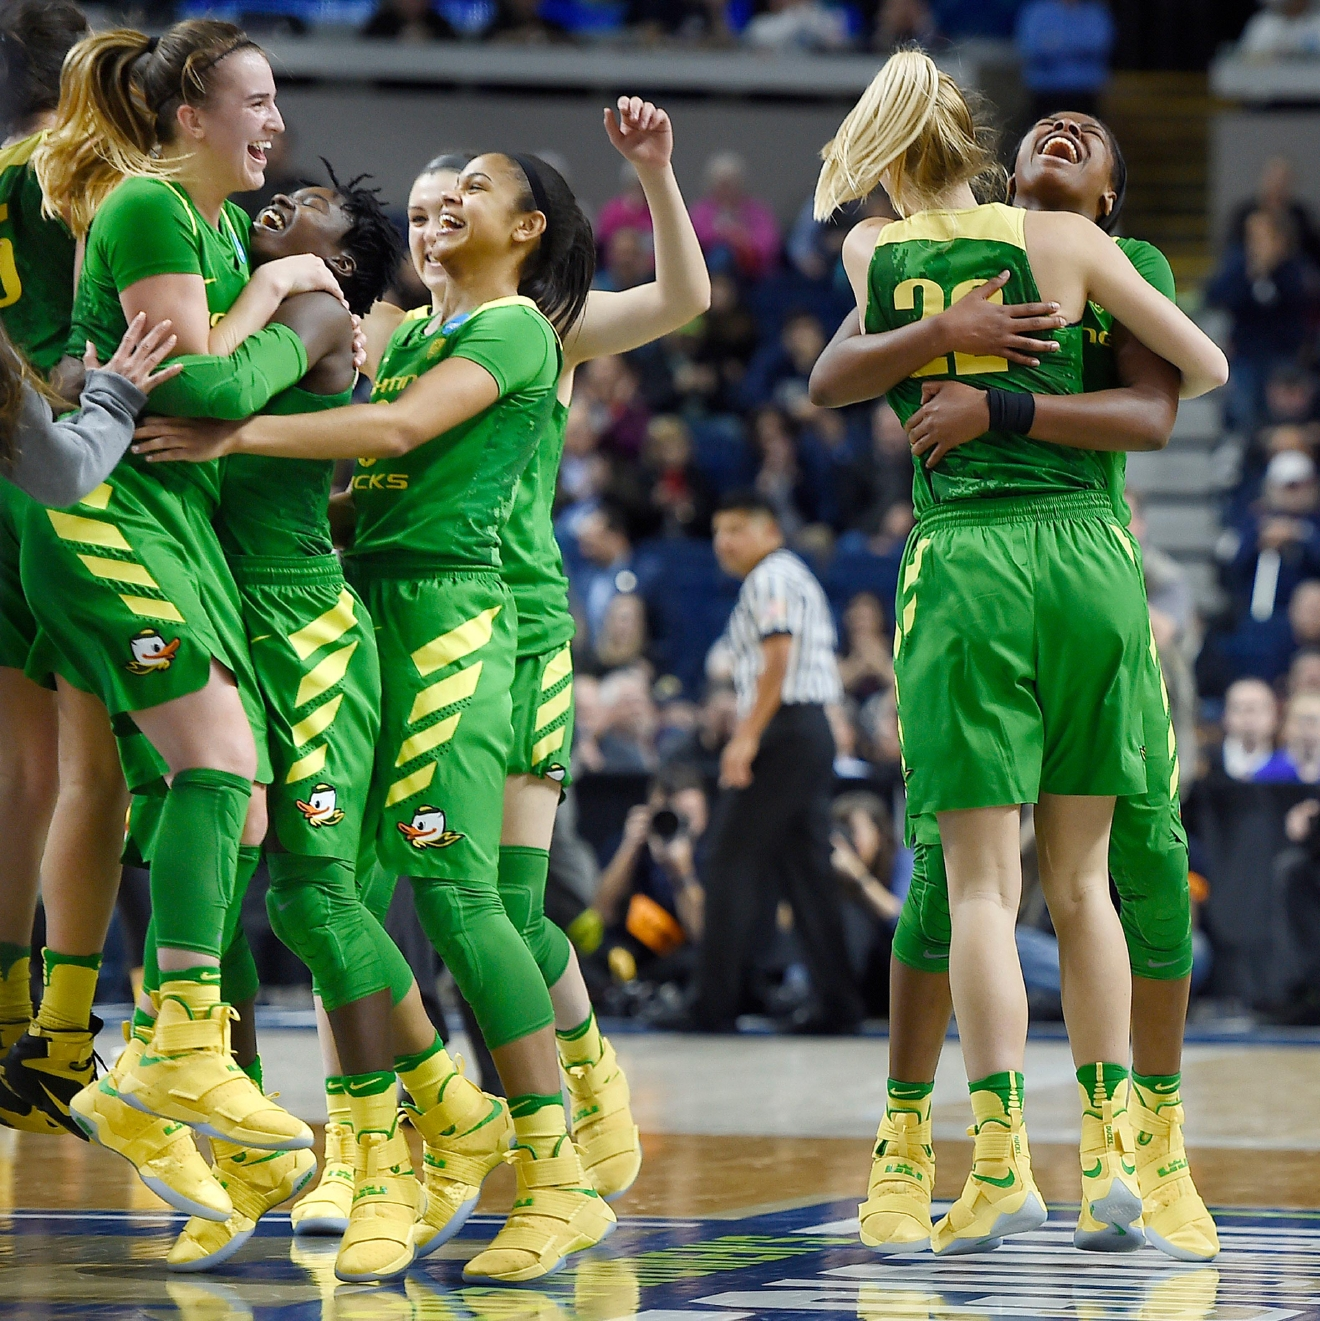 Oregon players celebrates their win over Maryland in a regional semifinal game in the NCAA women's college basketball tournament, Saturday, March 25, 2017, in Bridgeport, Conn. (AP Photo/Jessica Hill)